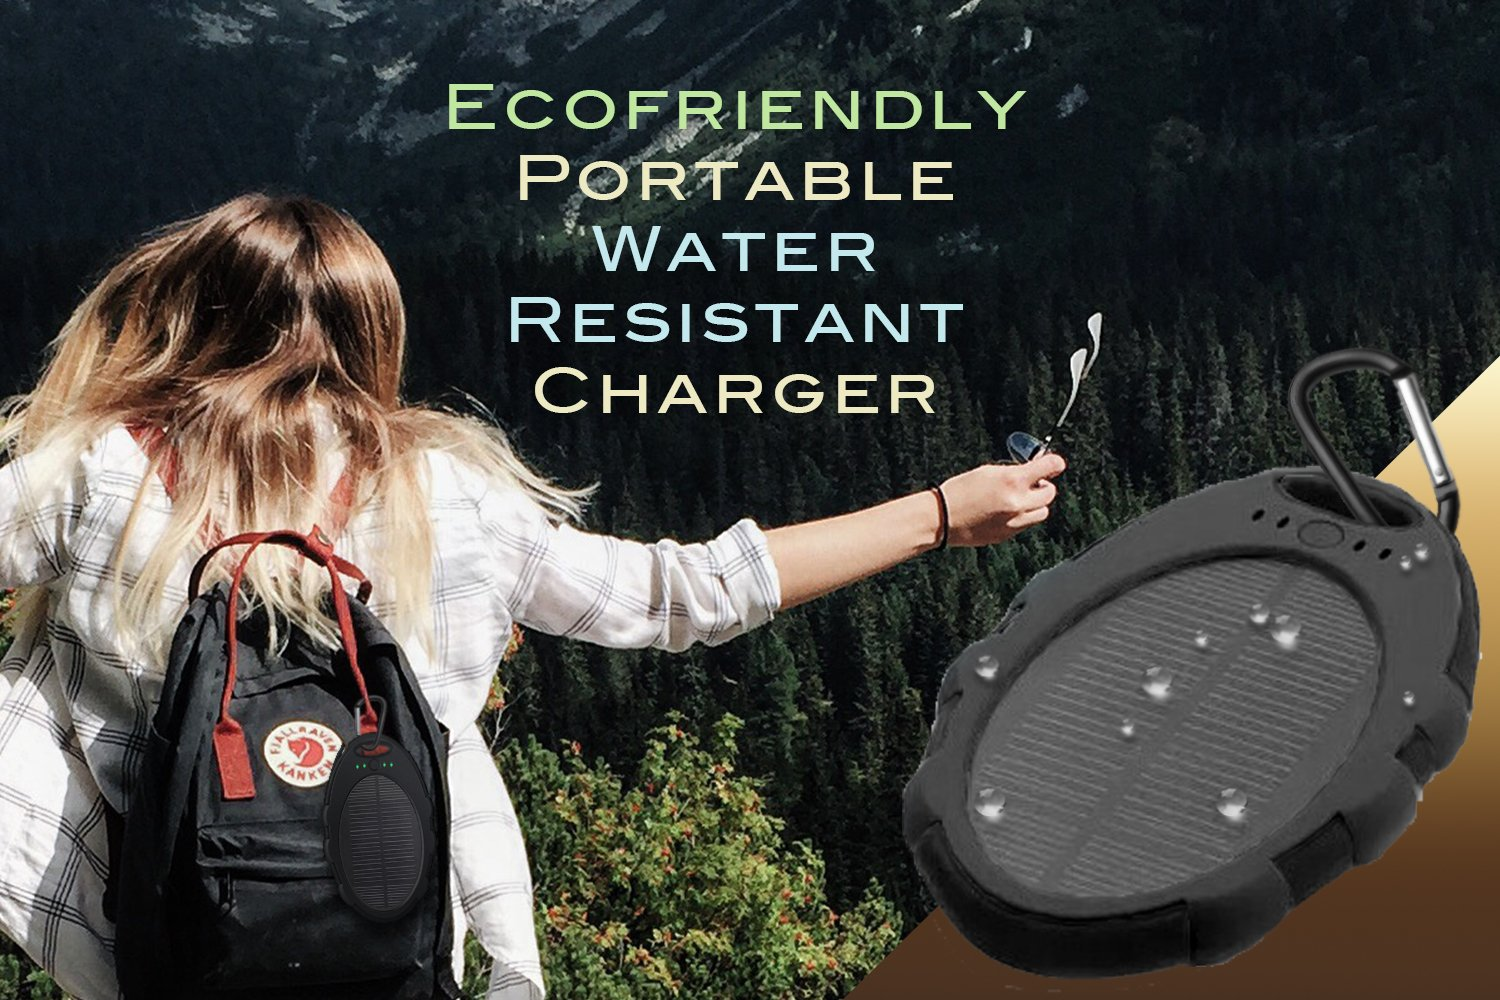 5,000mAh Portable Solar Power Bank Charger, Battery Pack, 2 USB Port +Flash Light +Charger Cable Water Resistant, Led indicator External Battery Backup, For all Cell phones, Smart Phone Tablet, Laptop by Tundras (Image #2)